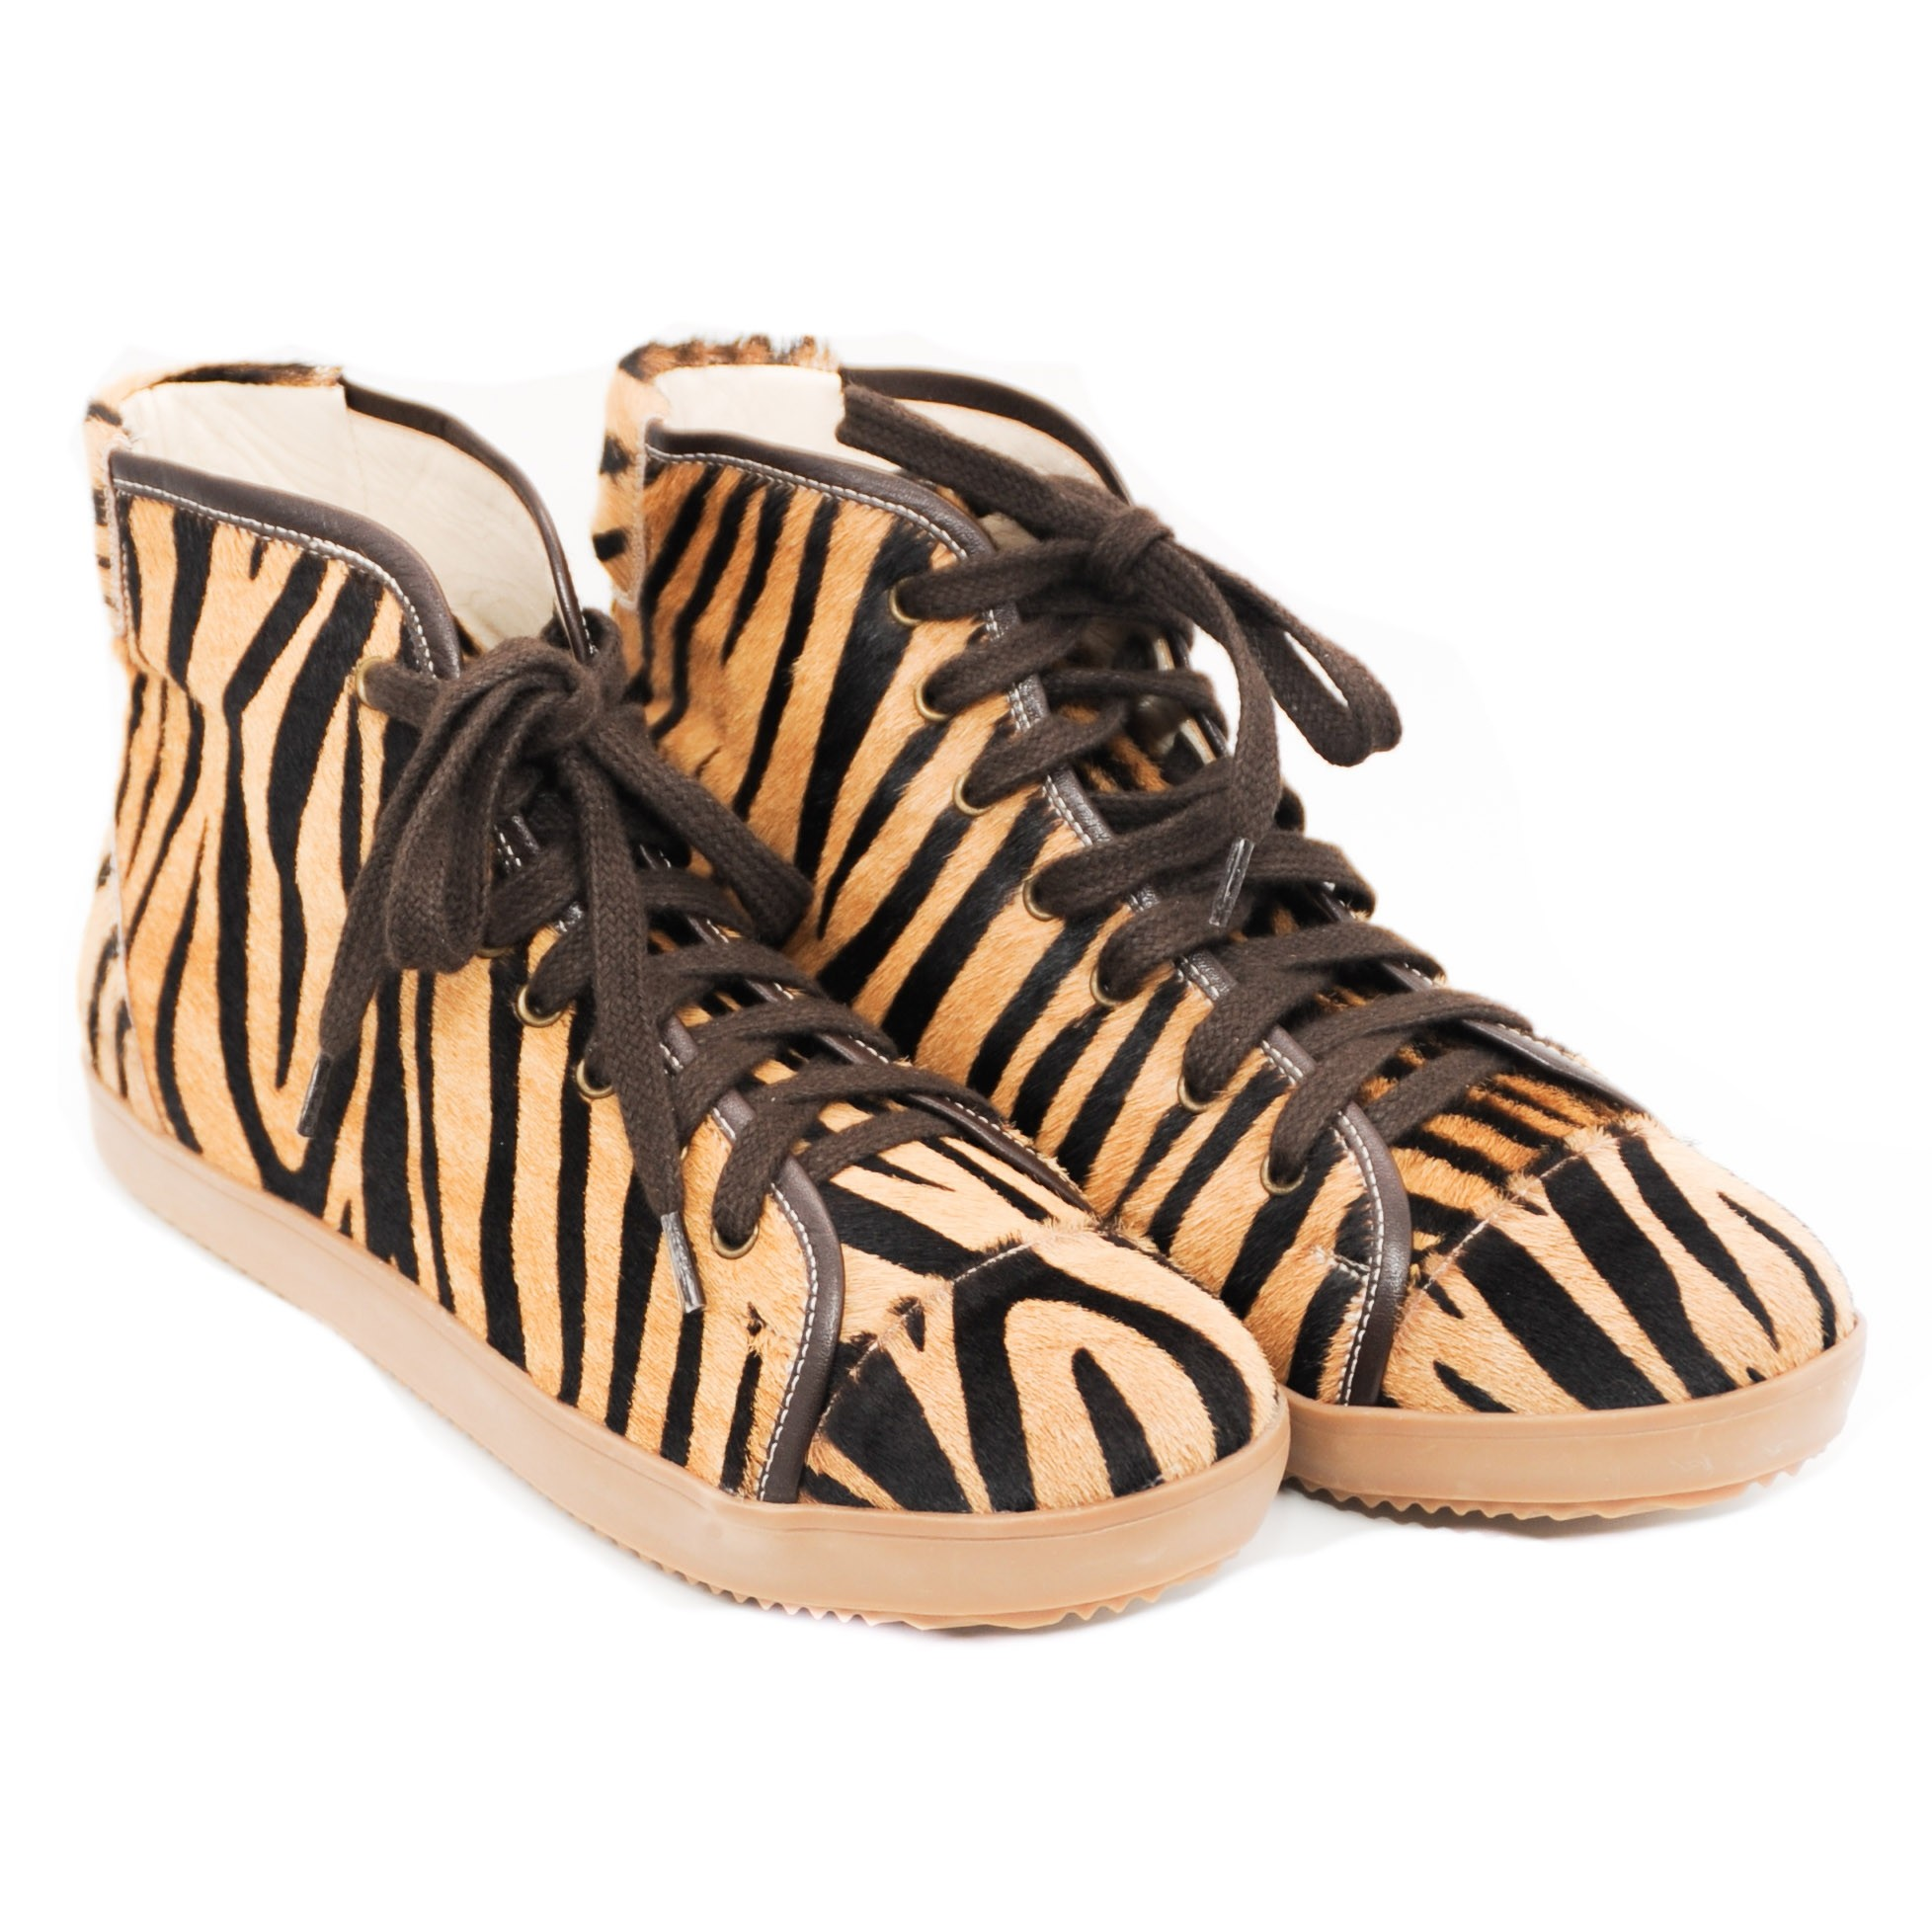 Pegia Trainer Pumps in Tiger Zebra Stripe Black and Tan Print for Ladies